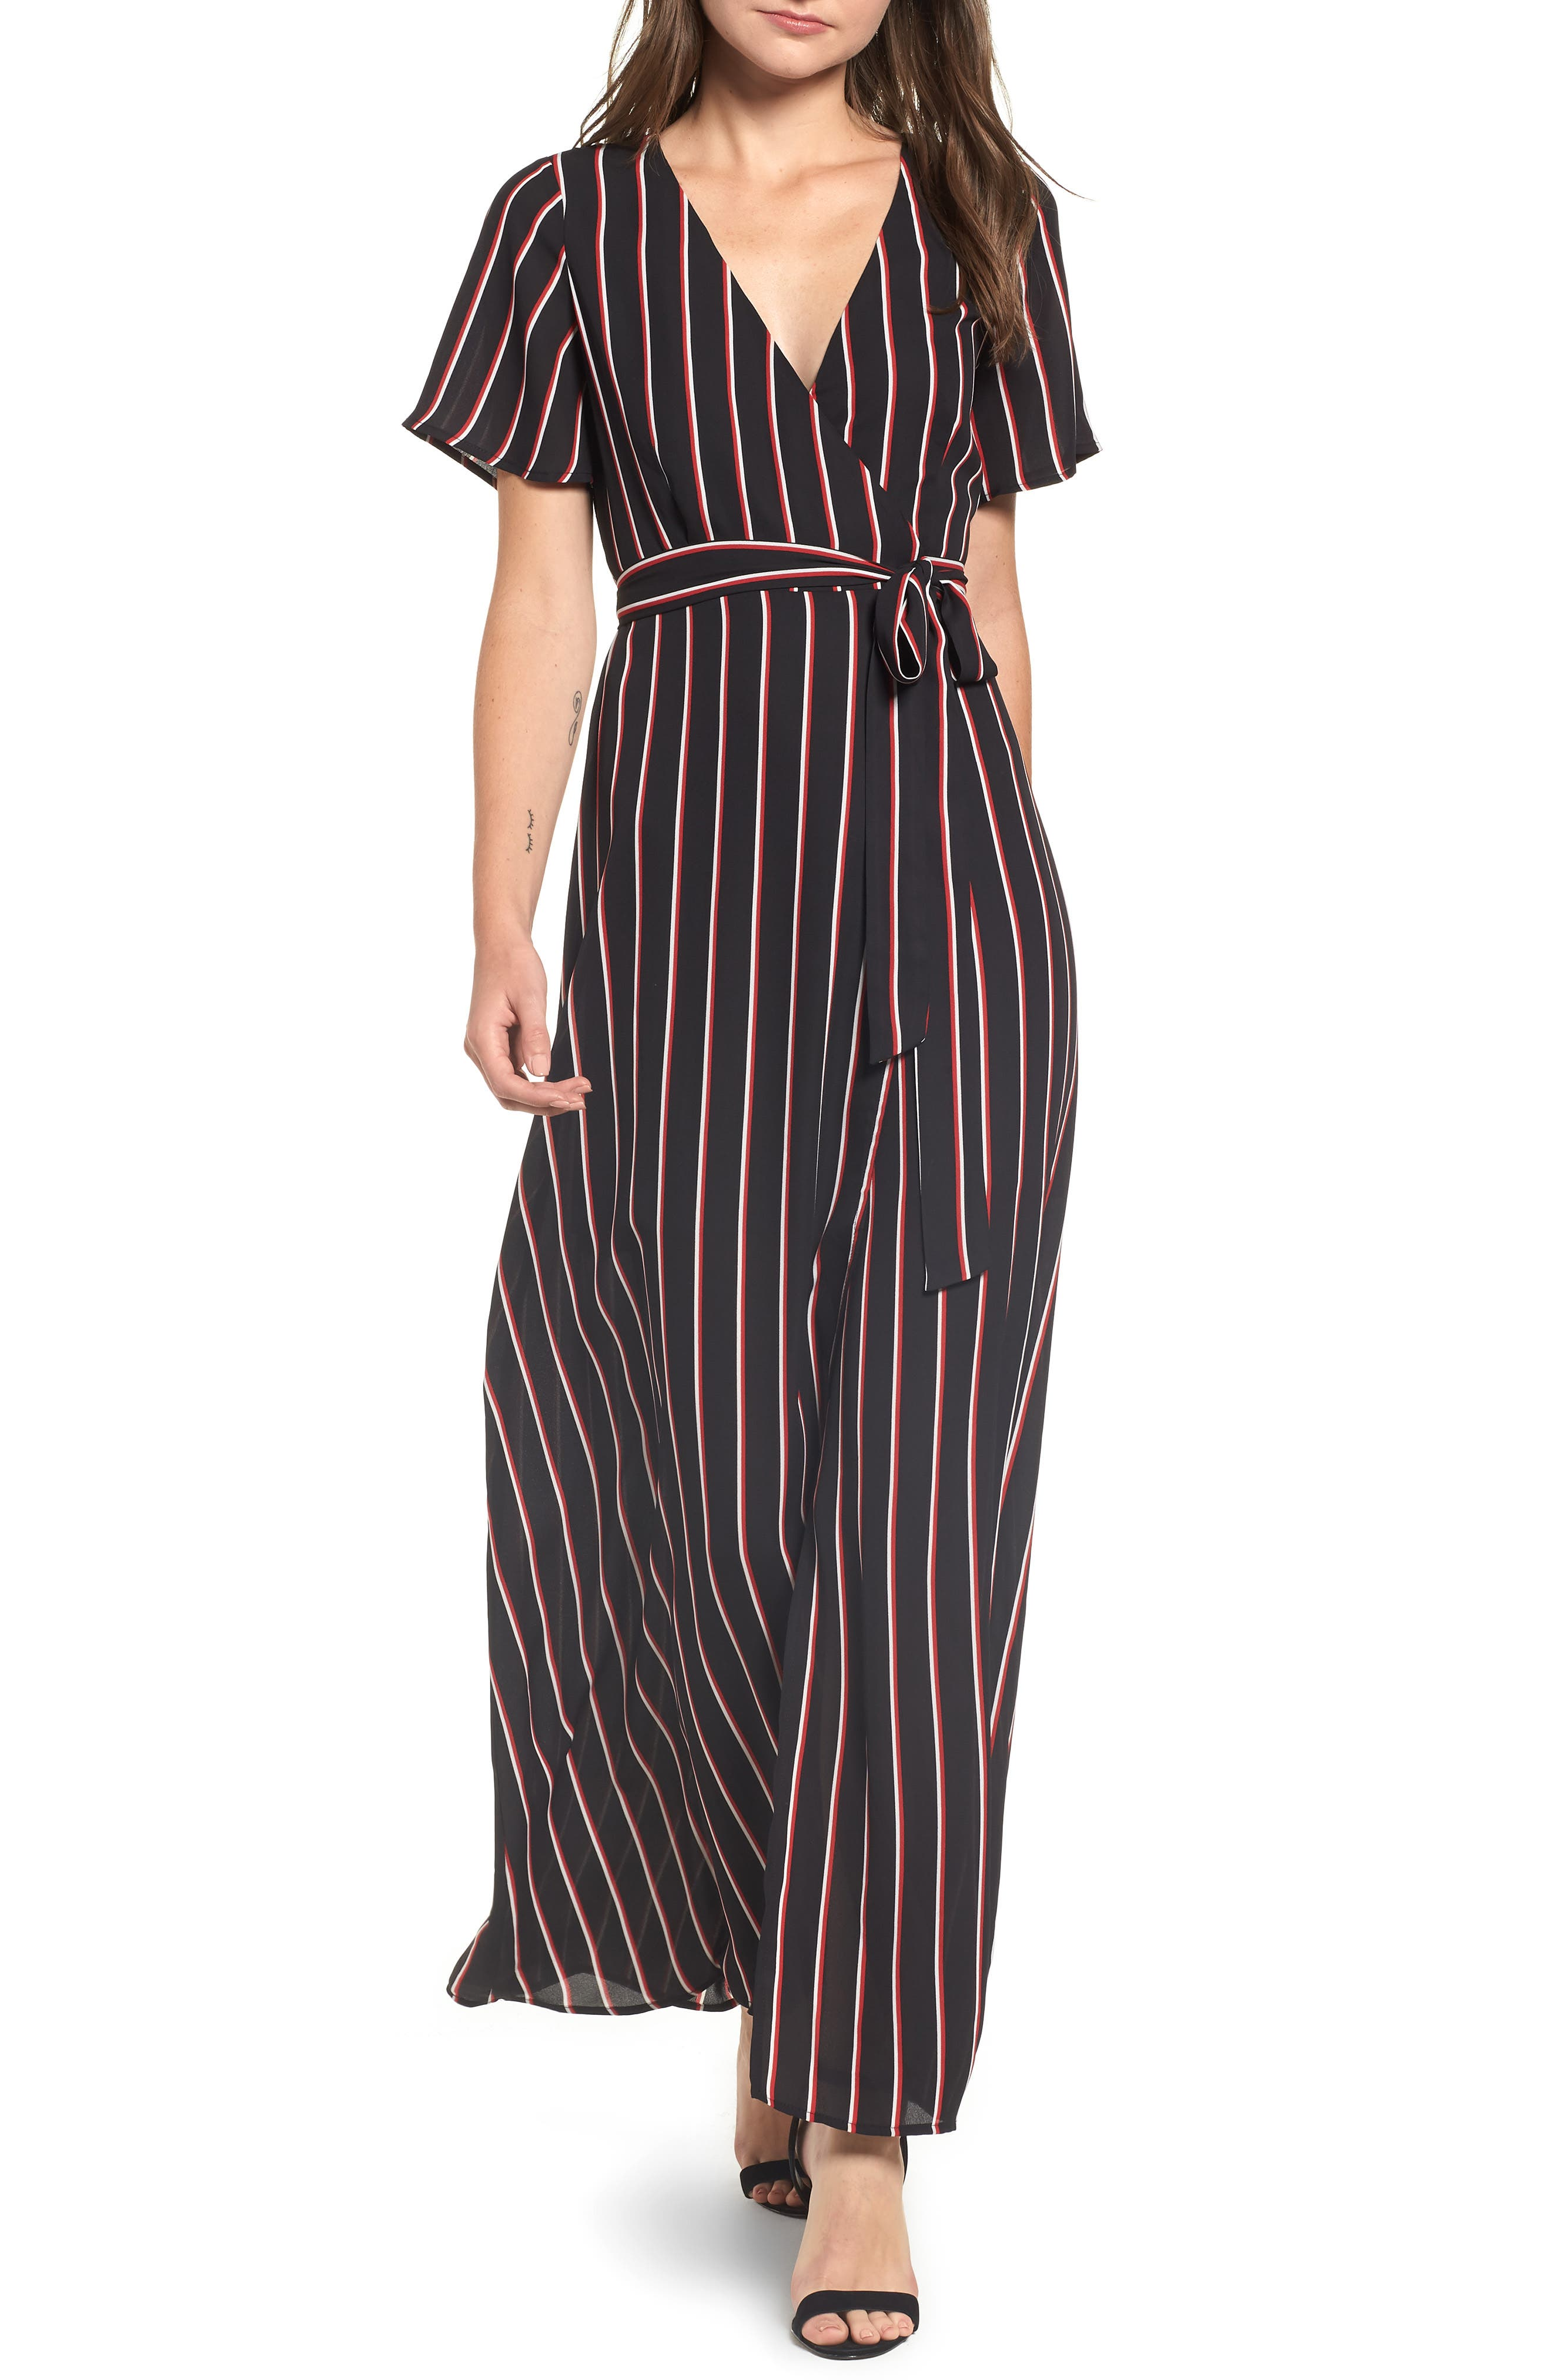 Wrap Maxi Dress,                         Main,                         color, BLACK DOUBLE STRIPE